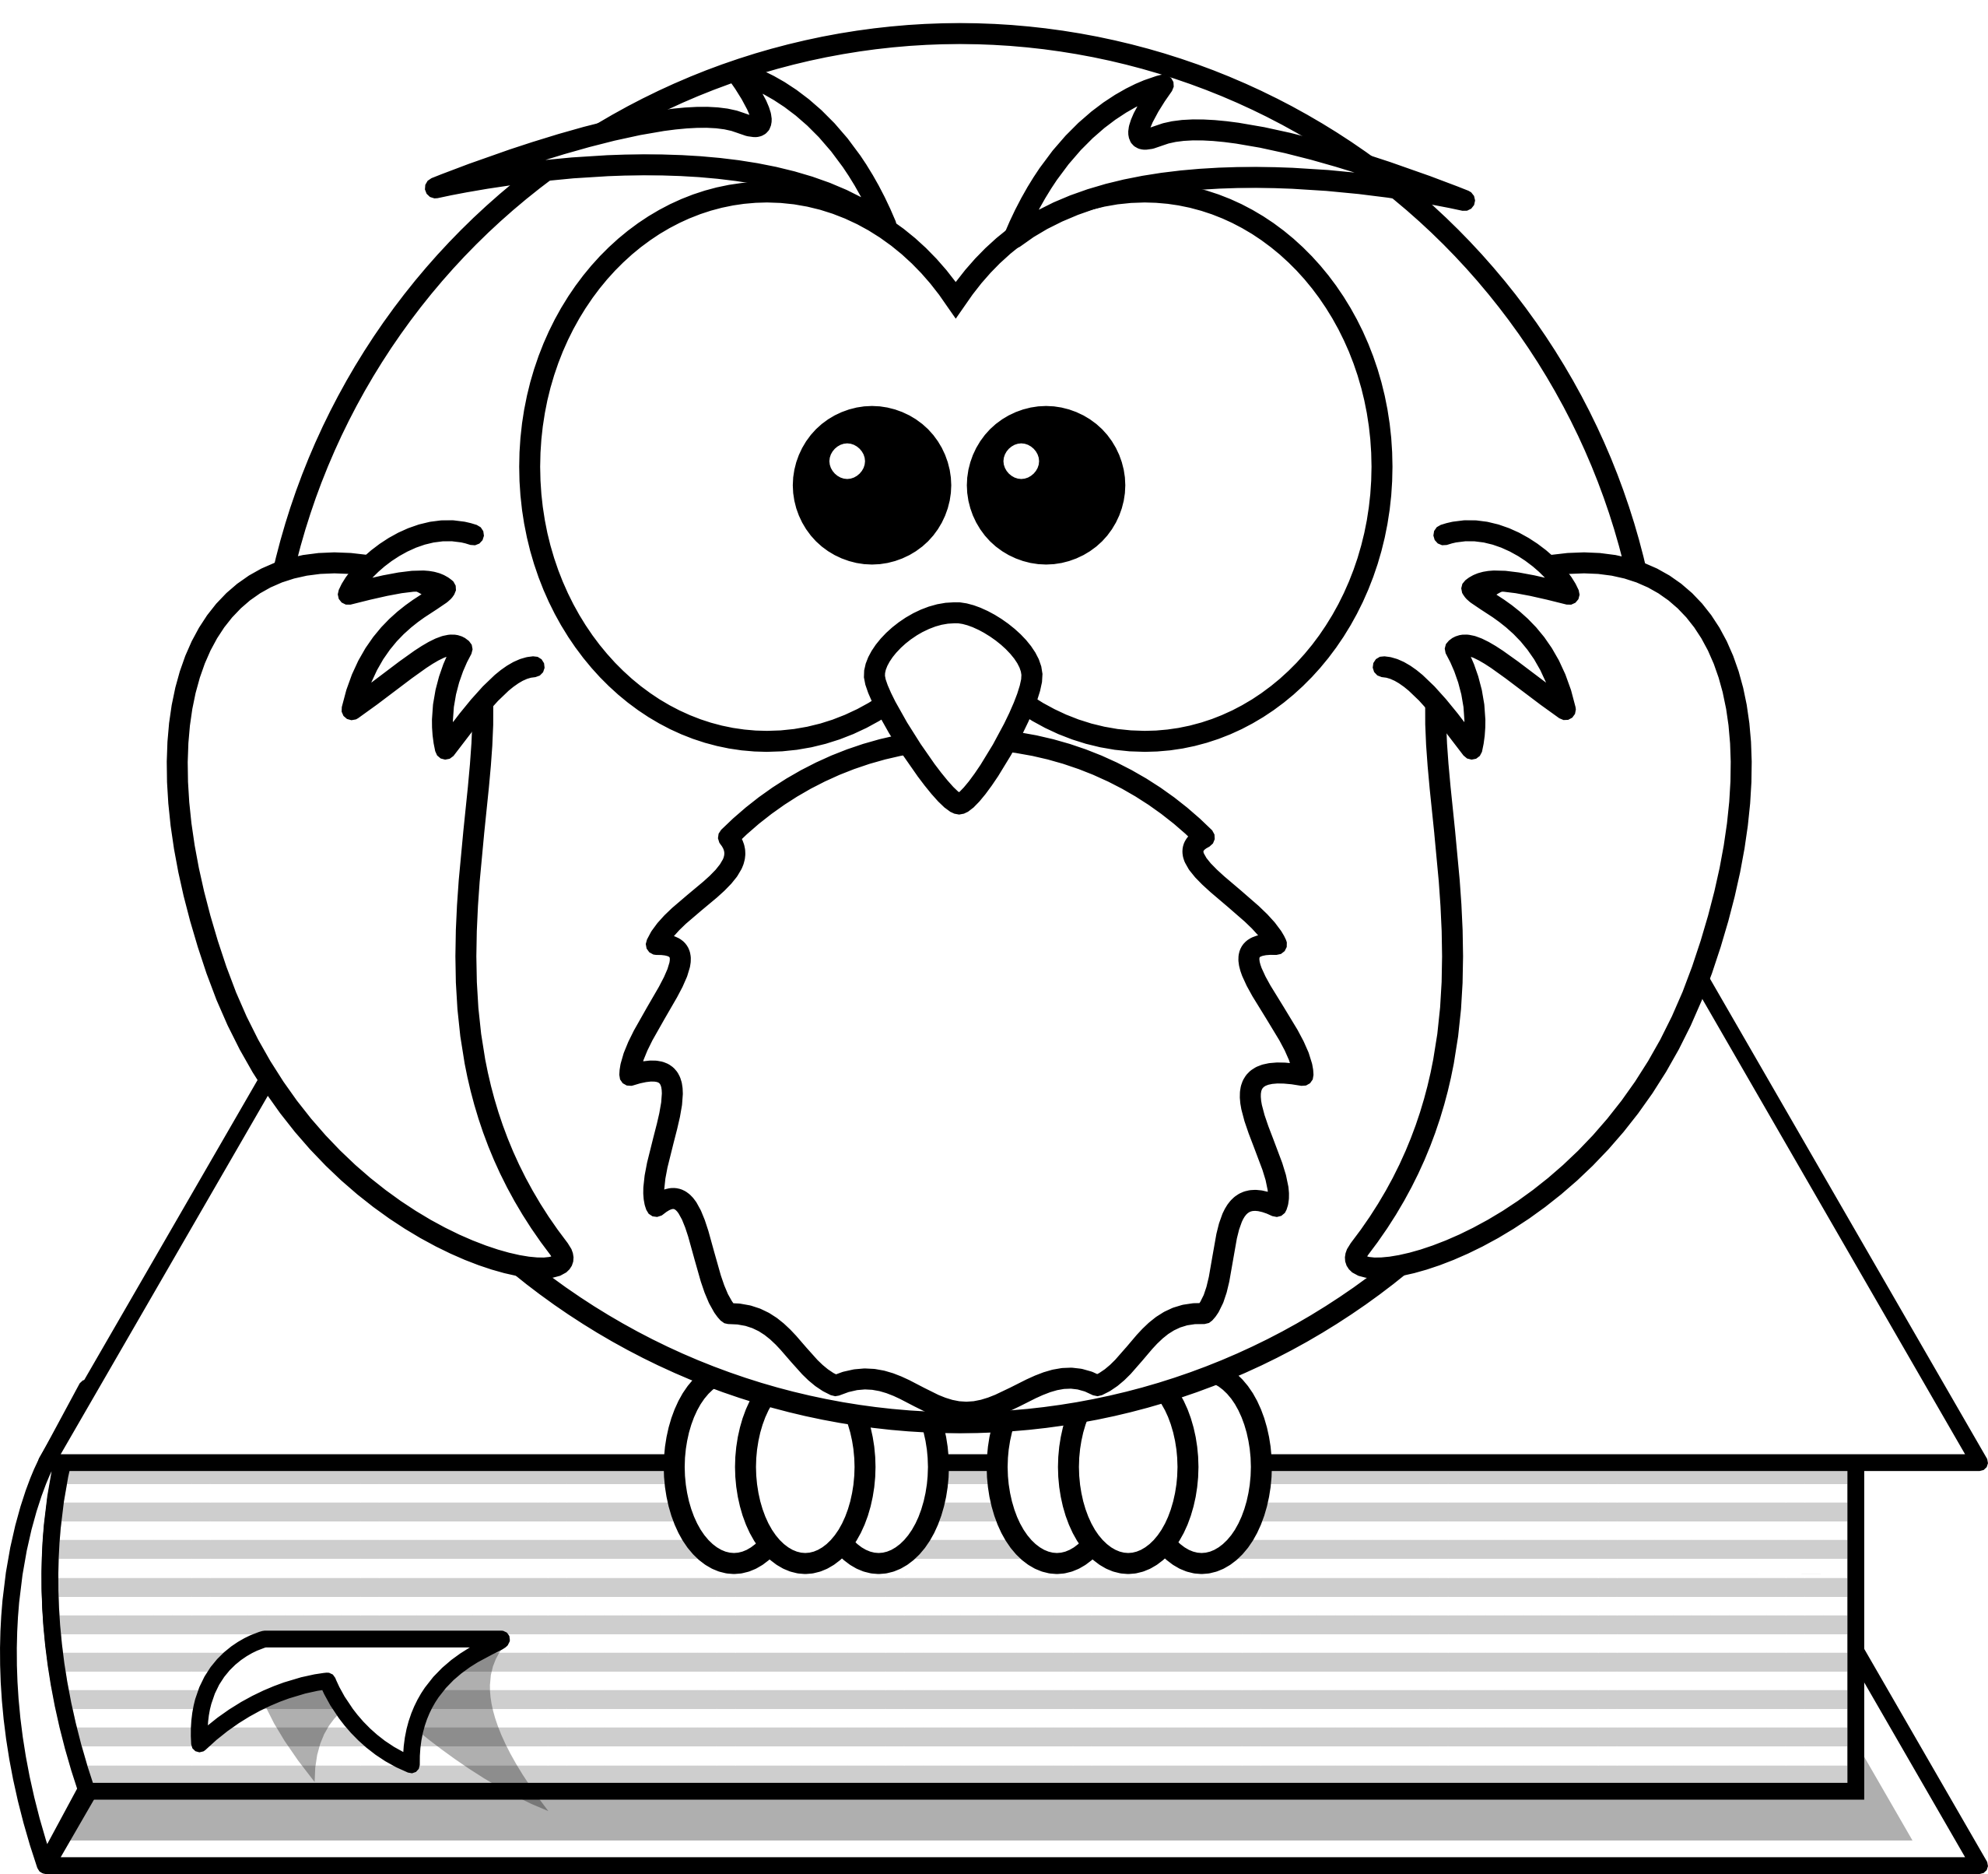 owl coloring images best black and white book clipart 18209 clipartioncom owl coloring images